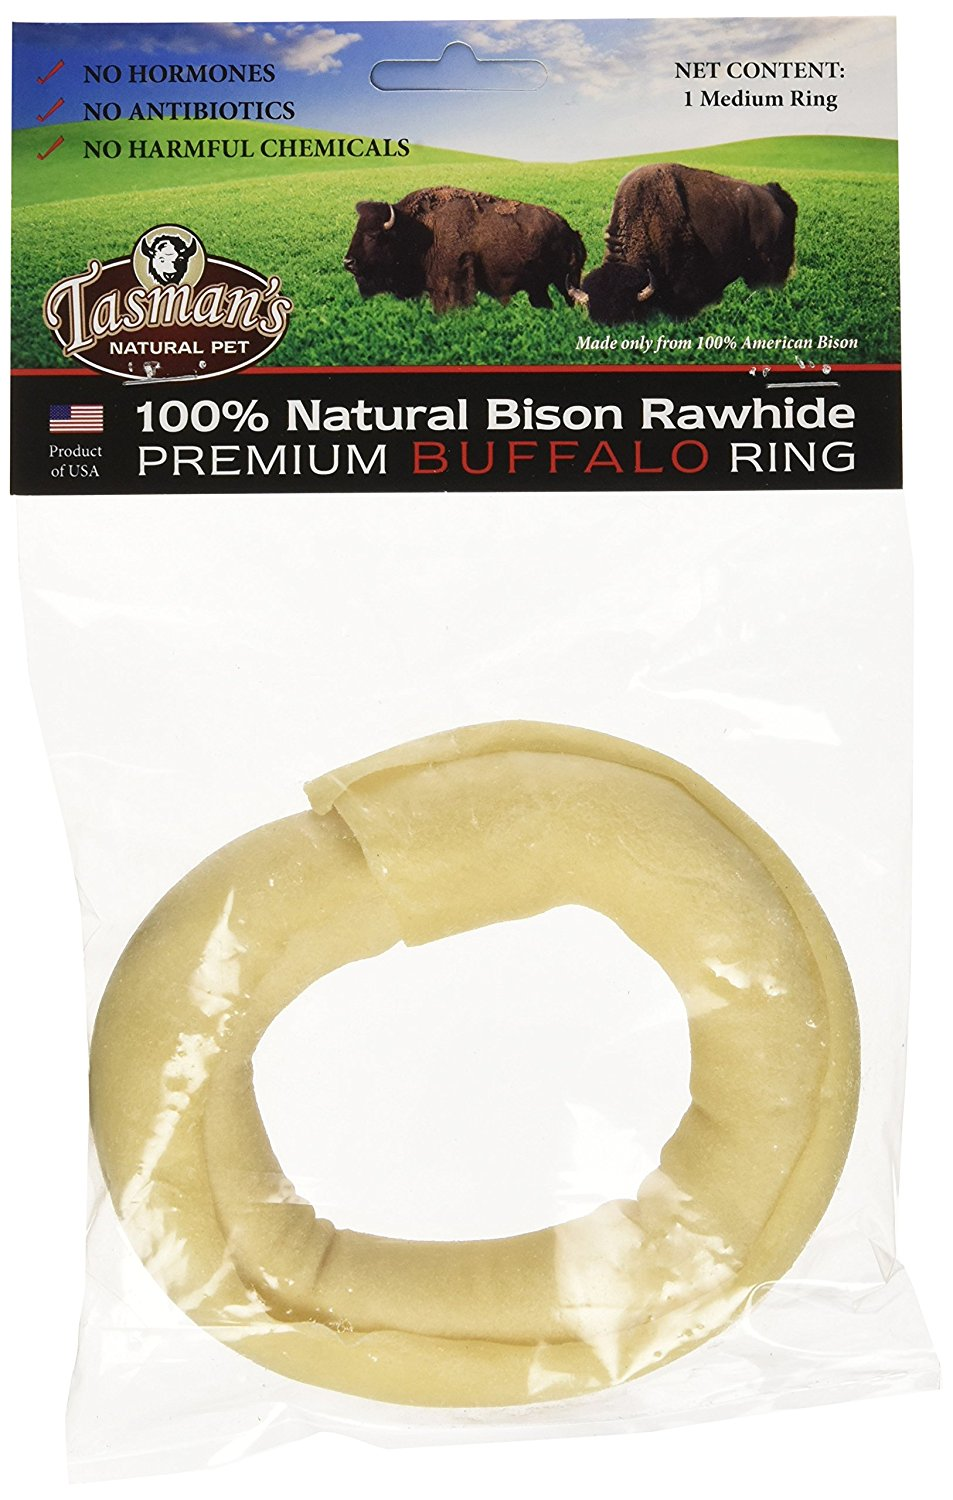 Tasman's Natural Pet All-Natural Buffalo Rawhide Rings - Made from US Bison